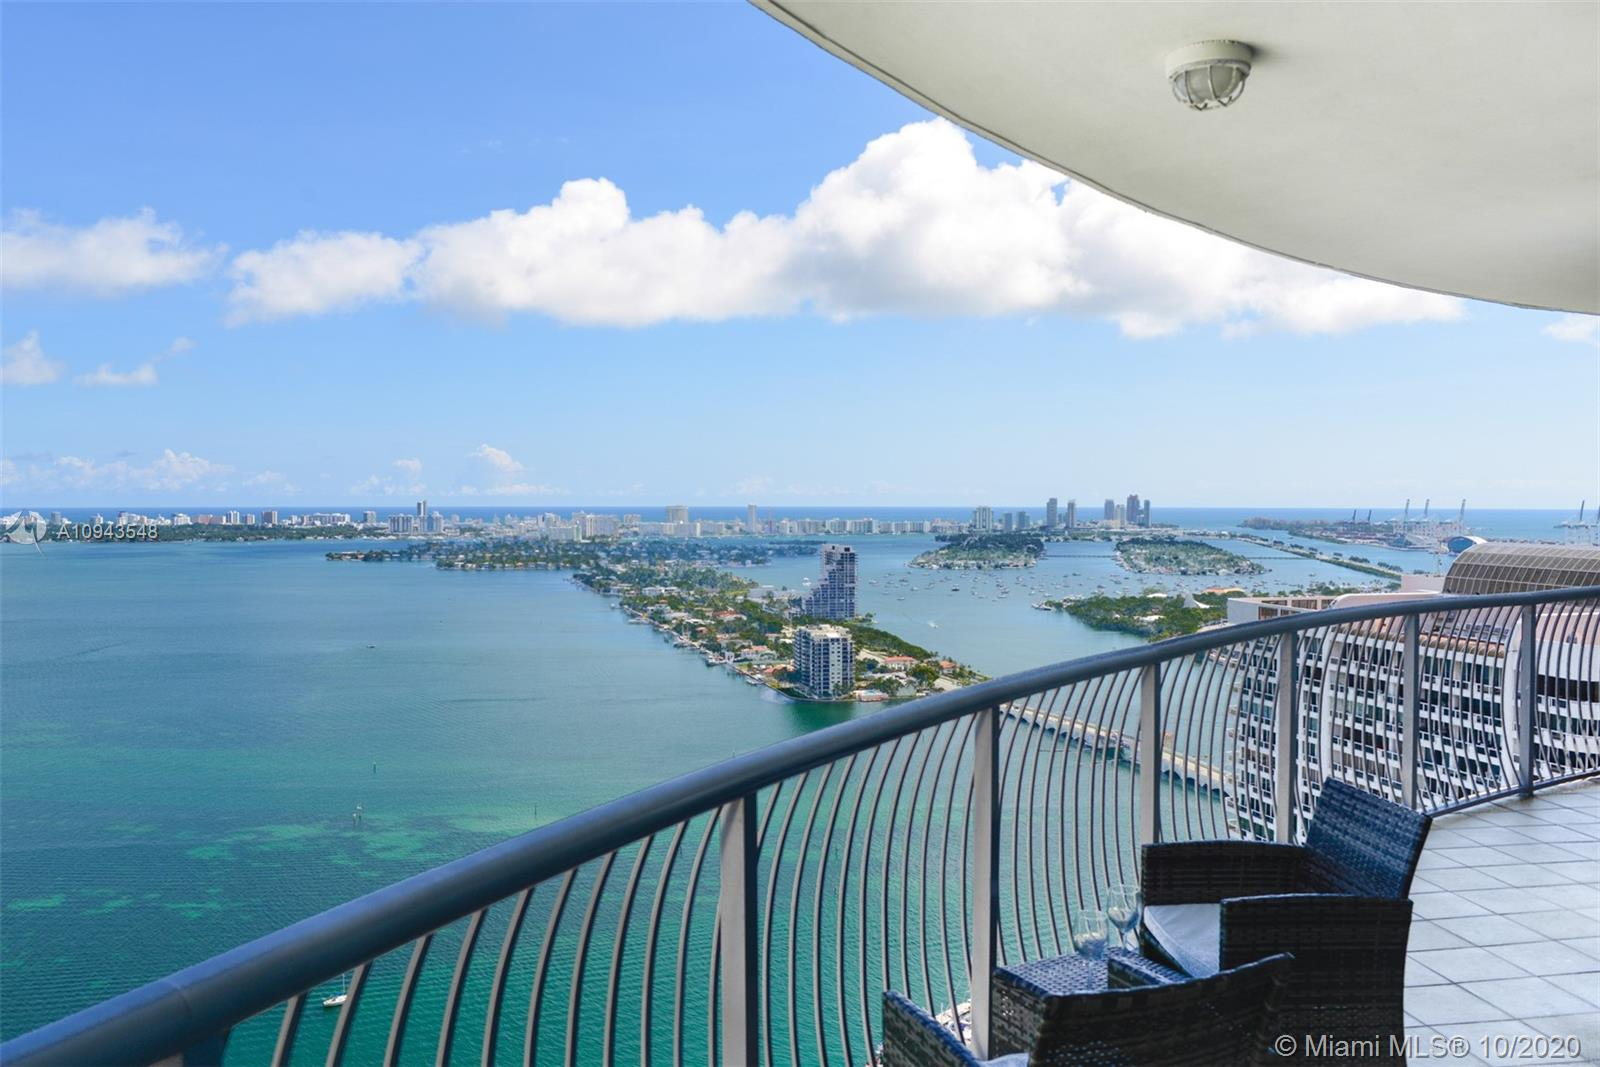 BREATHTAKING BAY AND OCEAN VIEWS. Best line in Opera Tower, 2/2 unit, Enjoy water views from every room. Porcelain floors, stainless steel appliances, huge wraparound balcony. INCLUDES water, cable, internet, Parking on the 2nd Floor. Large Pool, SPA Fitness center. Tennis and volleyball court in the park across the street, Great location! steps to free transportation (Trolley)walking distance to shops, restaurants, and entertainment. 5 min drive to South Beach.